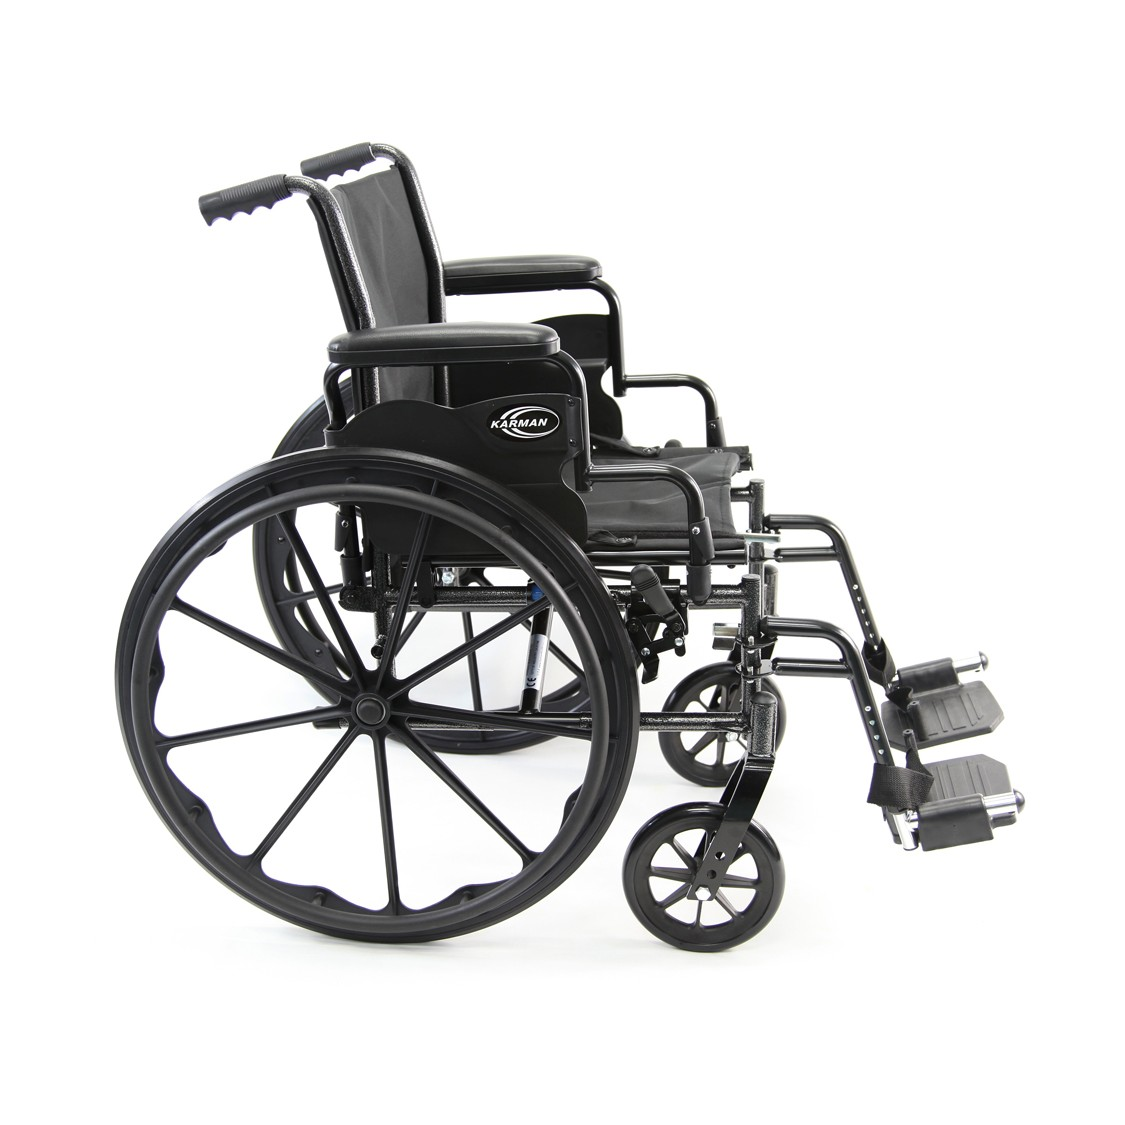 Karman LT-700T Lightweight Wheelchair with Desk Length Detachable Armrests